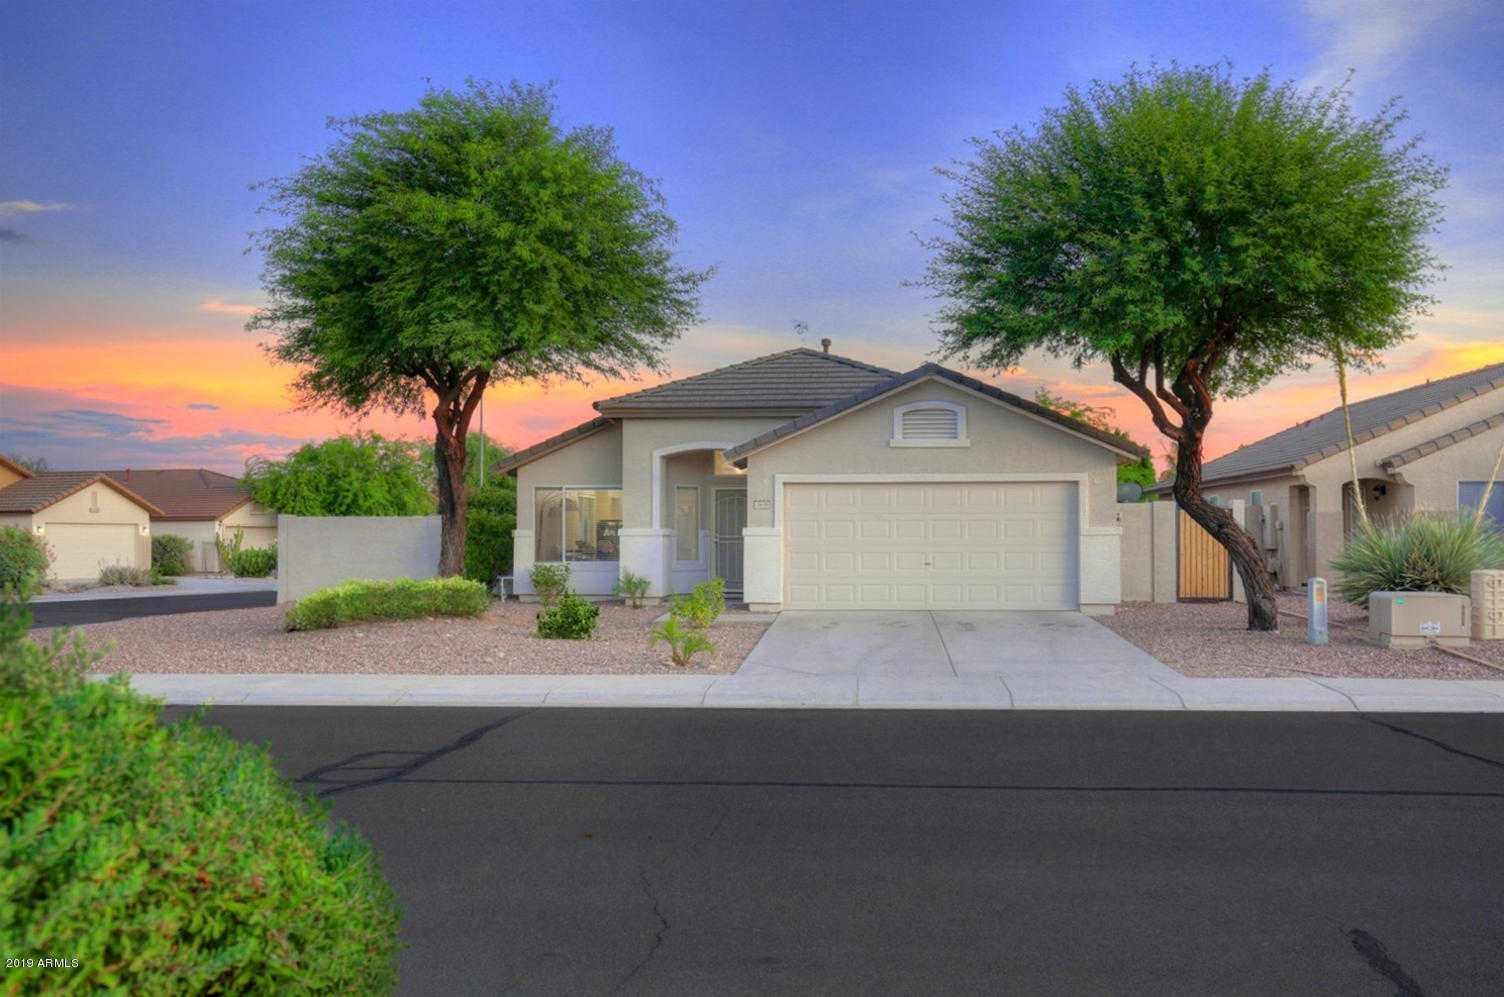 $300,000 - 4Br/2Ba - Home for Sale in Fletcher Heights, Peoria